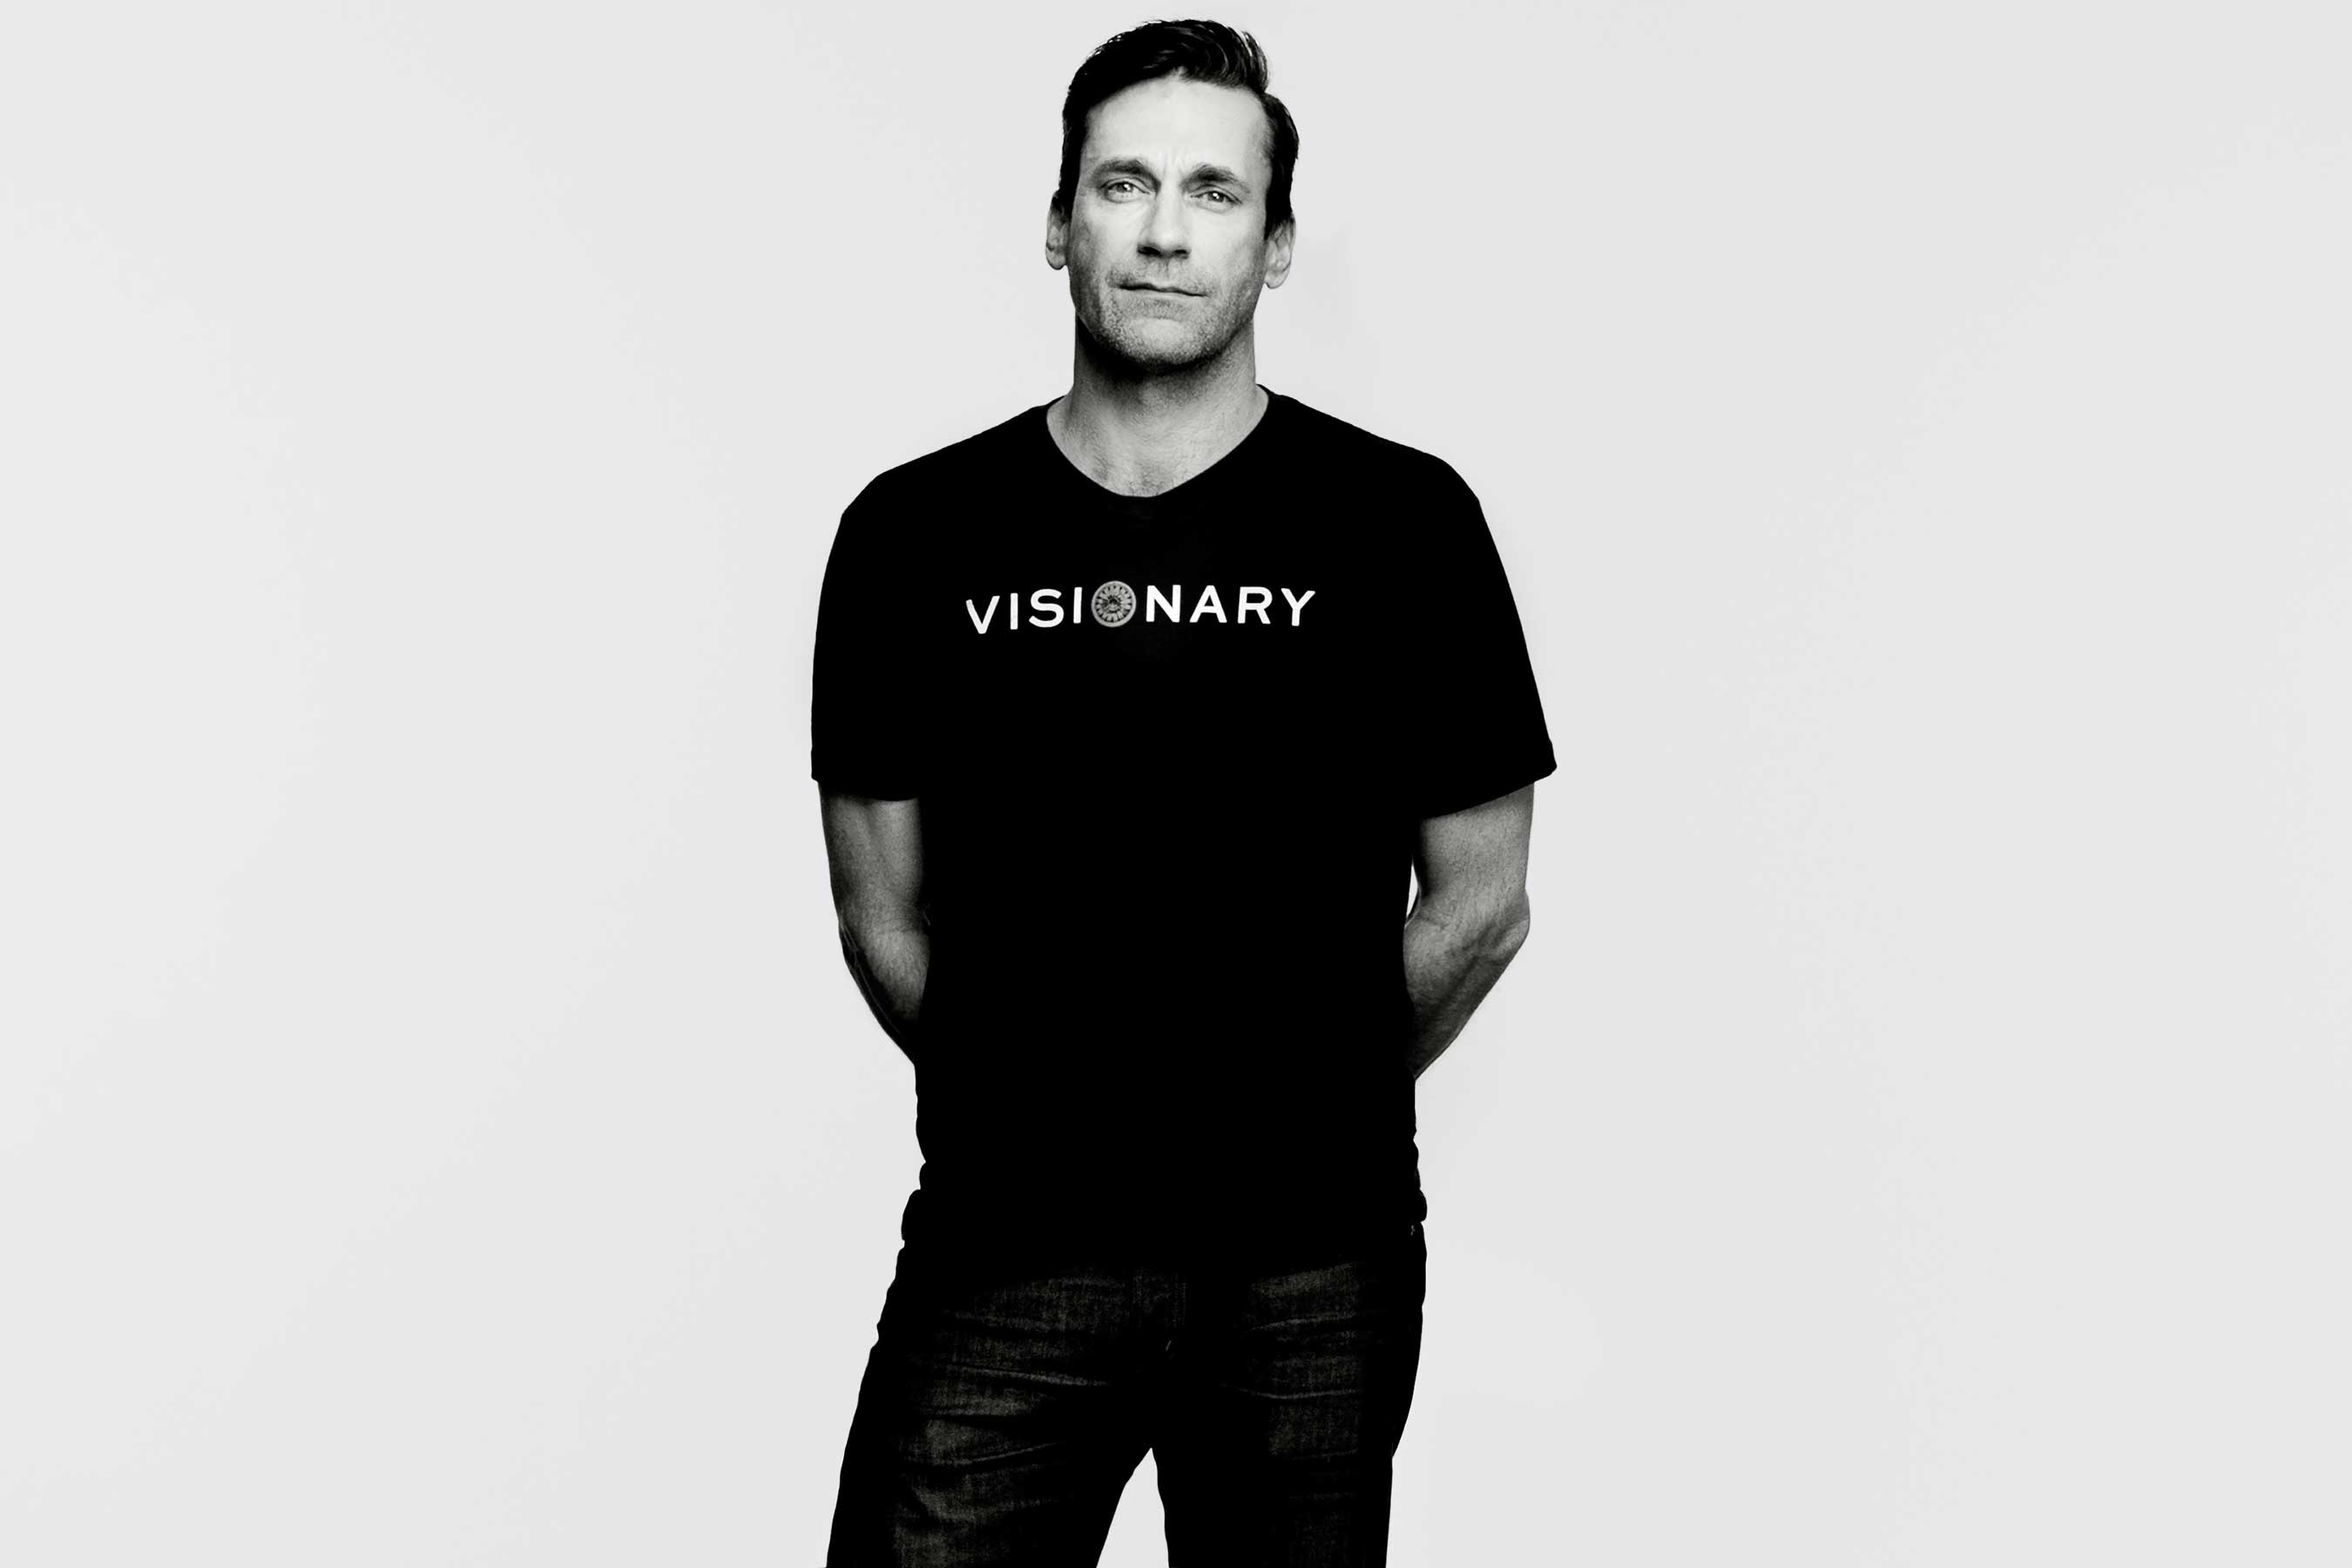 Jon Hamm encourages women to Embrace Ambition in a Tory Burch Foundation PSA video.